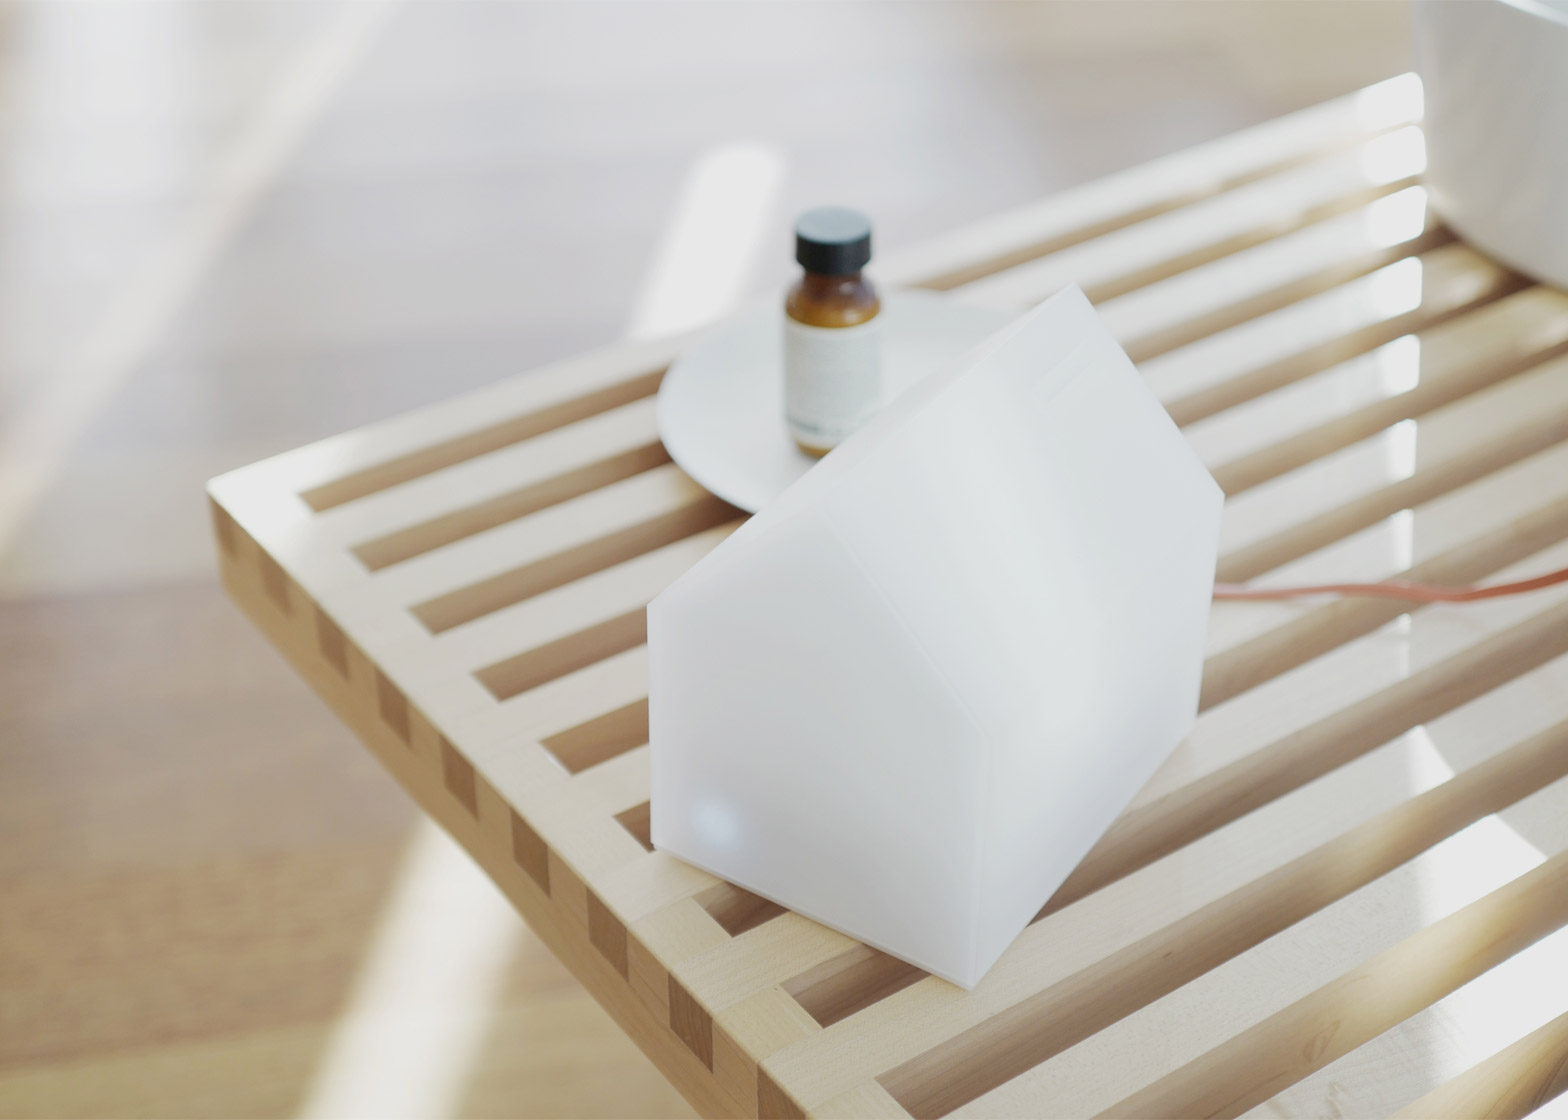 House Aroma Diffuser by Design 11+